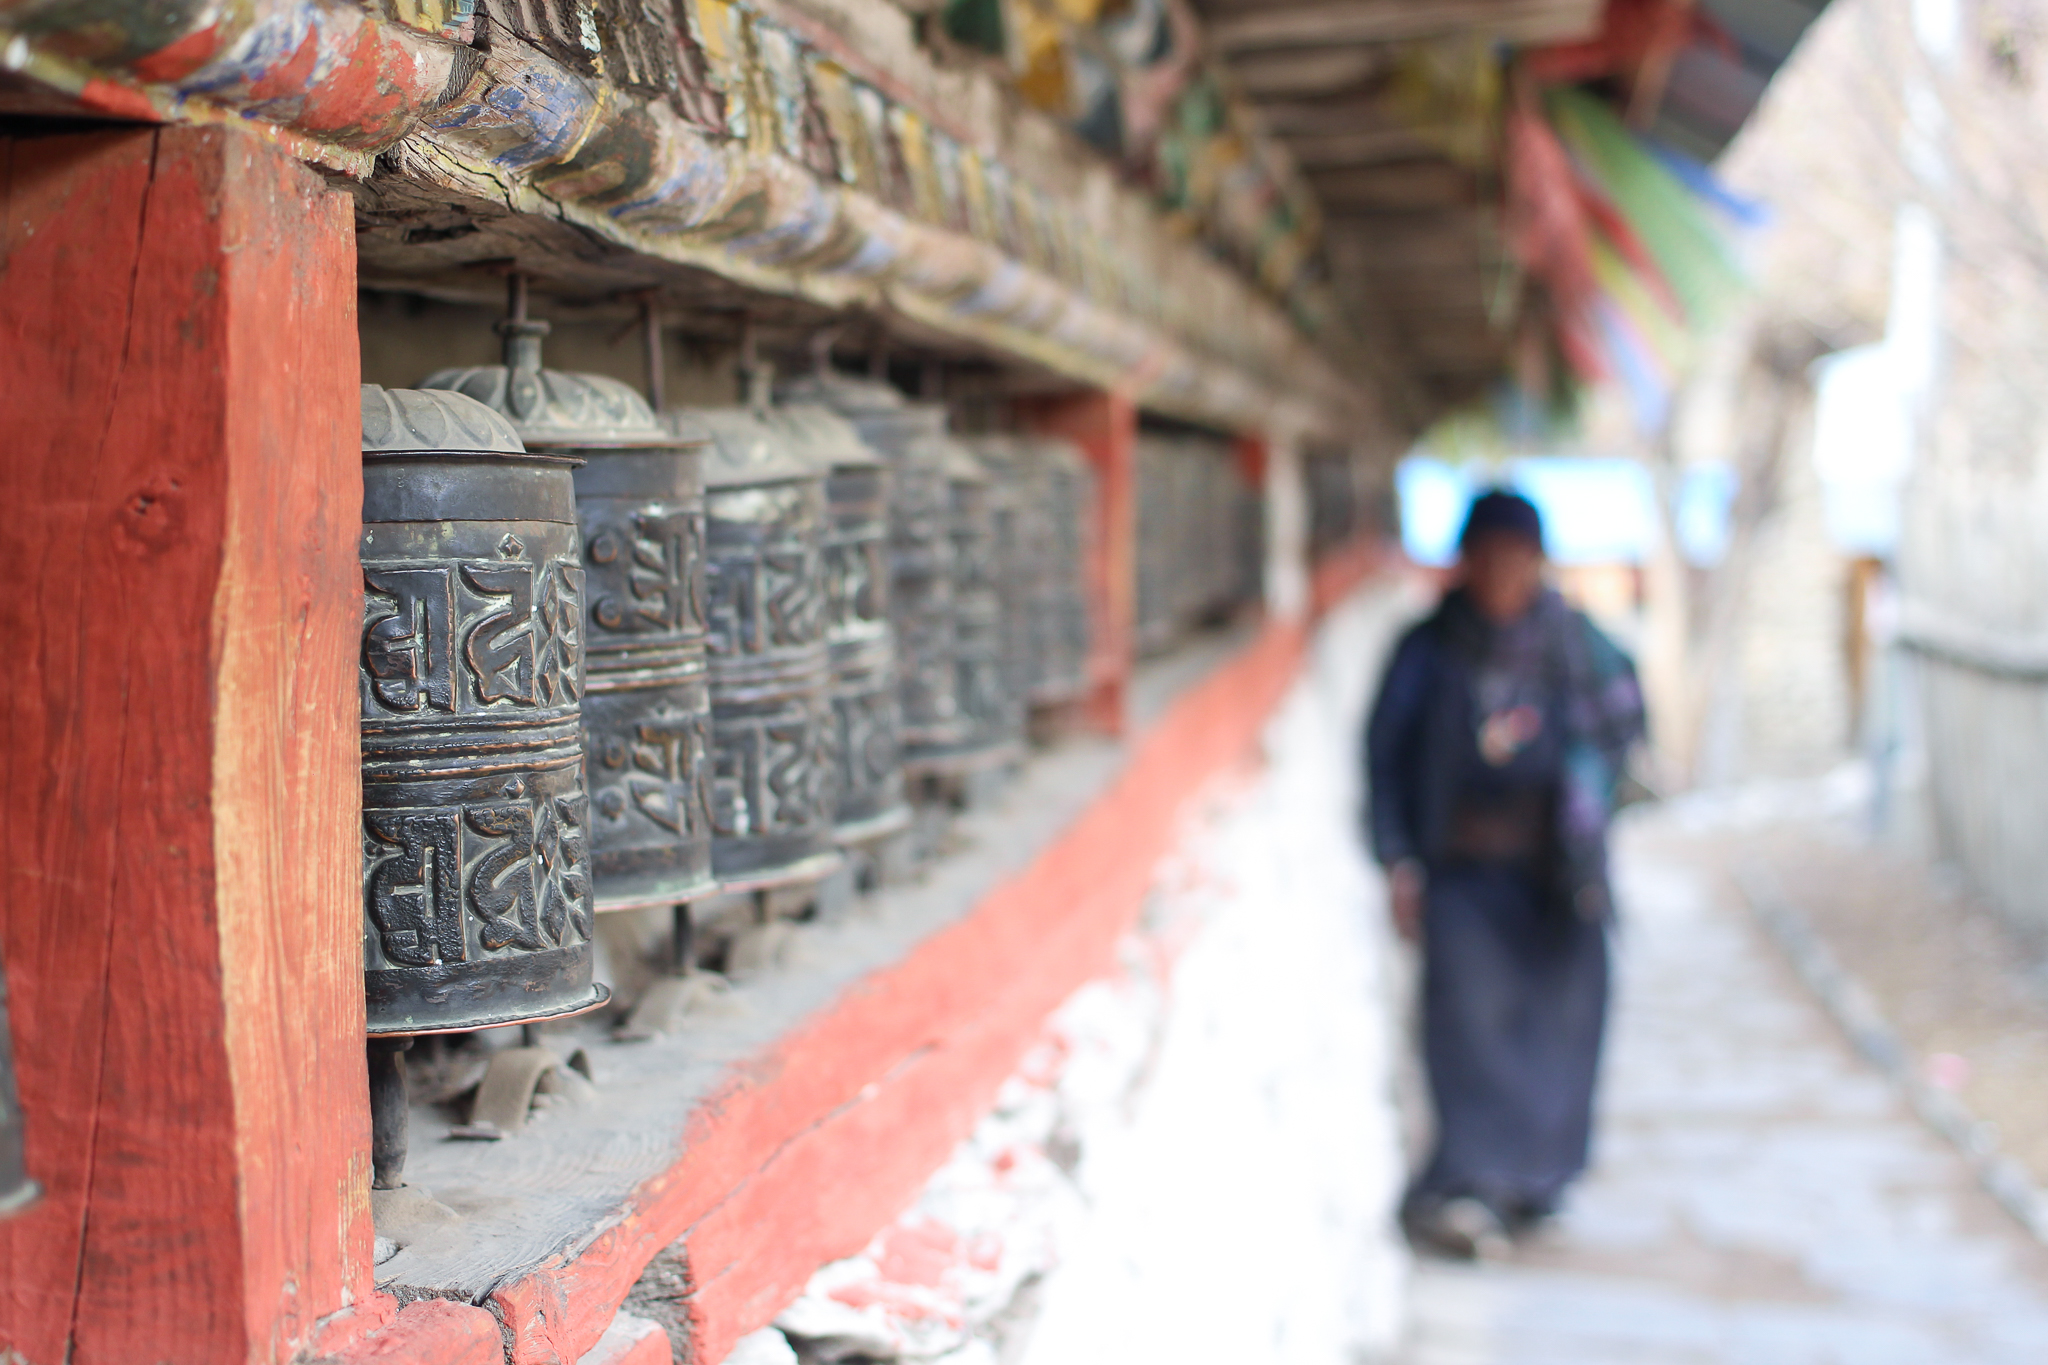 Tibetan Buddhist prayer wheels have rolled up paper inside bearing a mantra, and it is believed that spinning the cylinders emanates positive energy